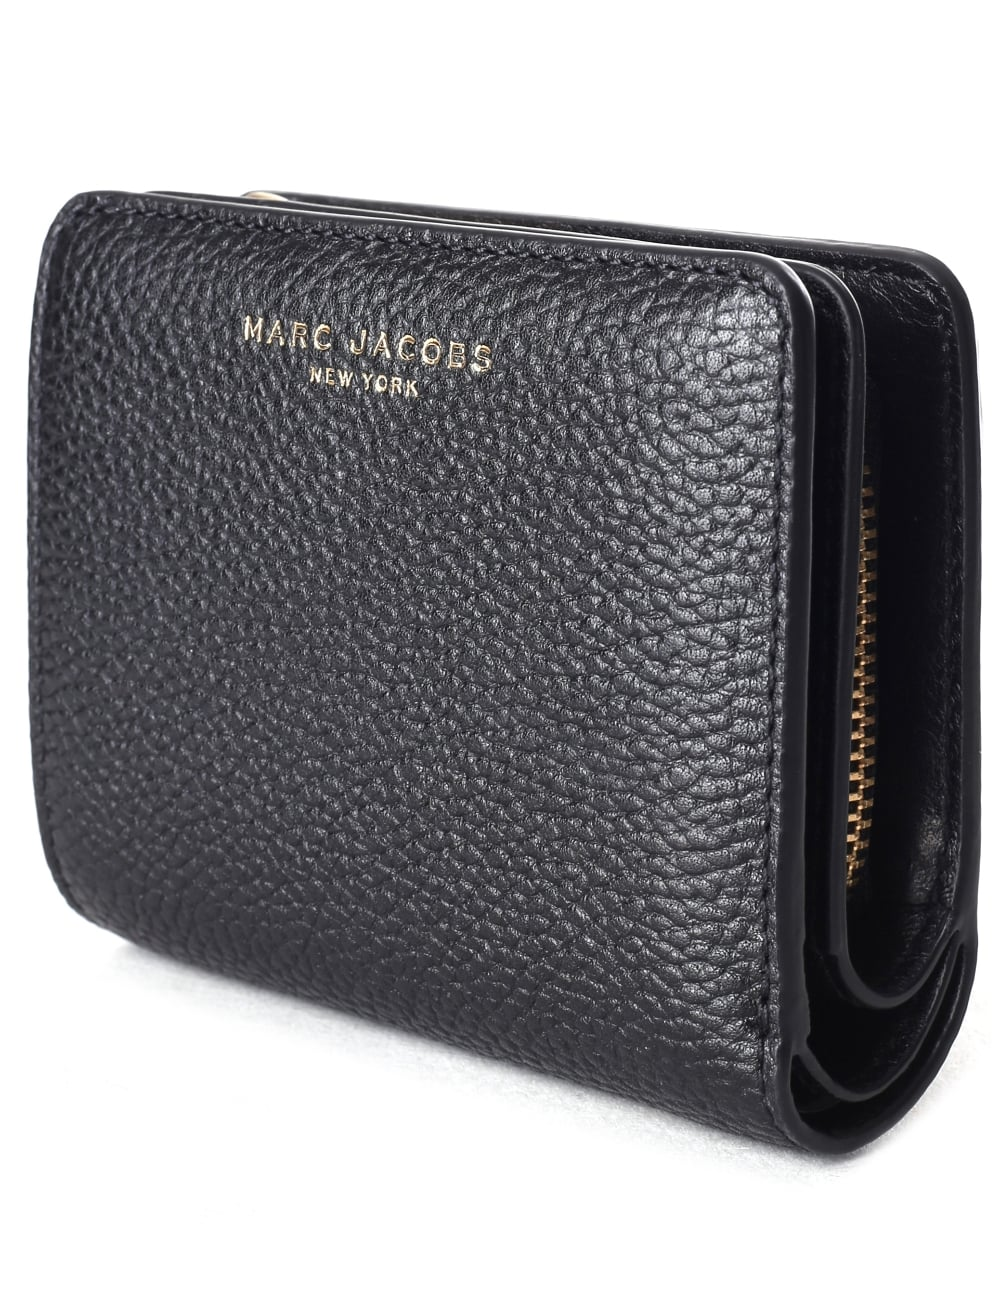 Marc Jacobs Gotham mini compact wallet ywLWxk2